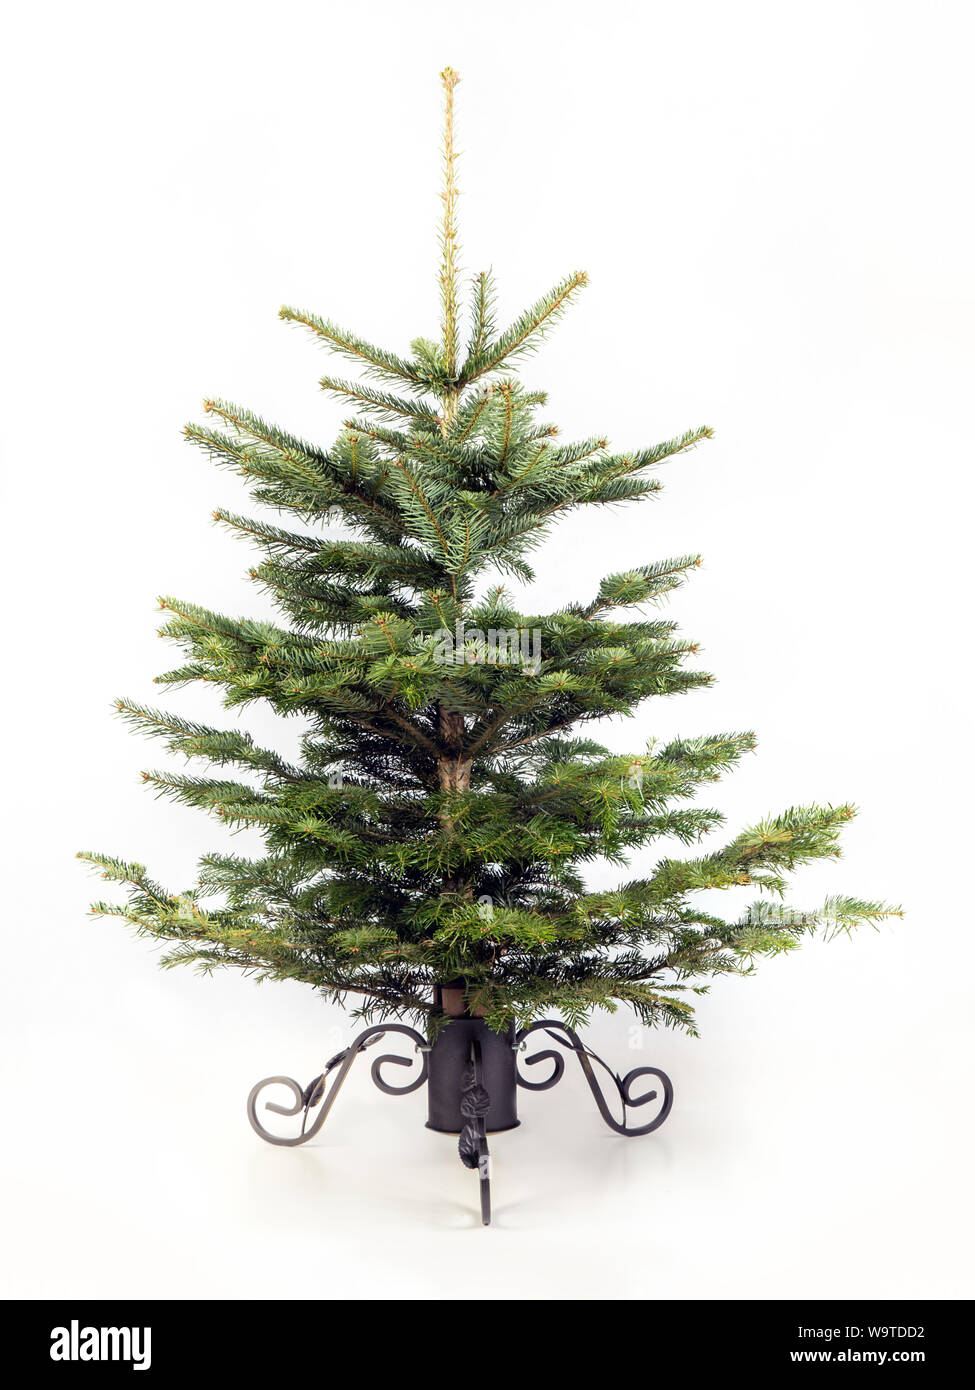 Undecorated Christmas Tree High Resolution Stock Photography And Images Alamy New users enjoy 60% off. https www alamy com shot of clean undecorated christmas tree attached to the stand against white background image264224830 html